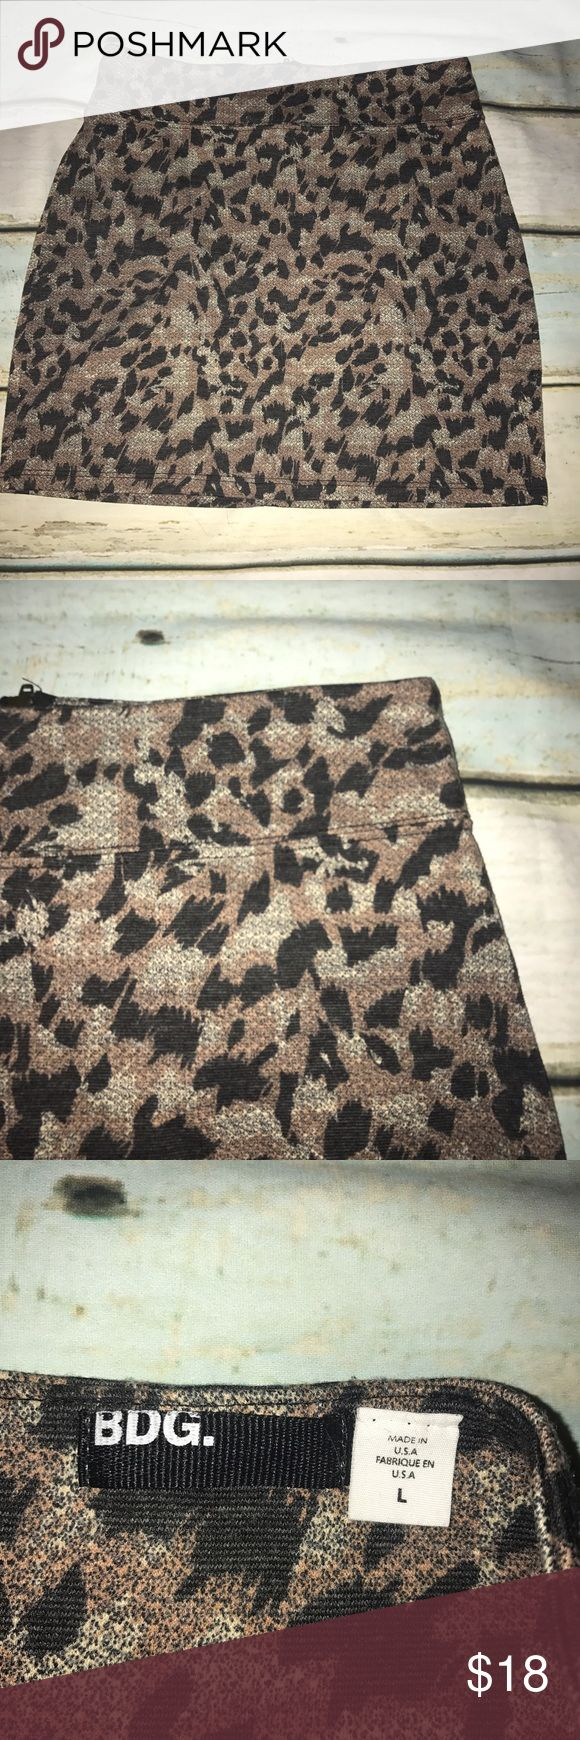 BDG Large Urban Outfitters Cheetah Skirt So cute and in good condition! BDG Skirts